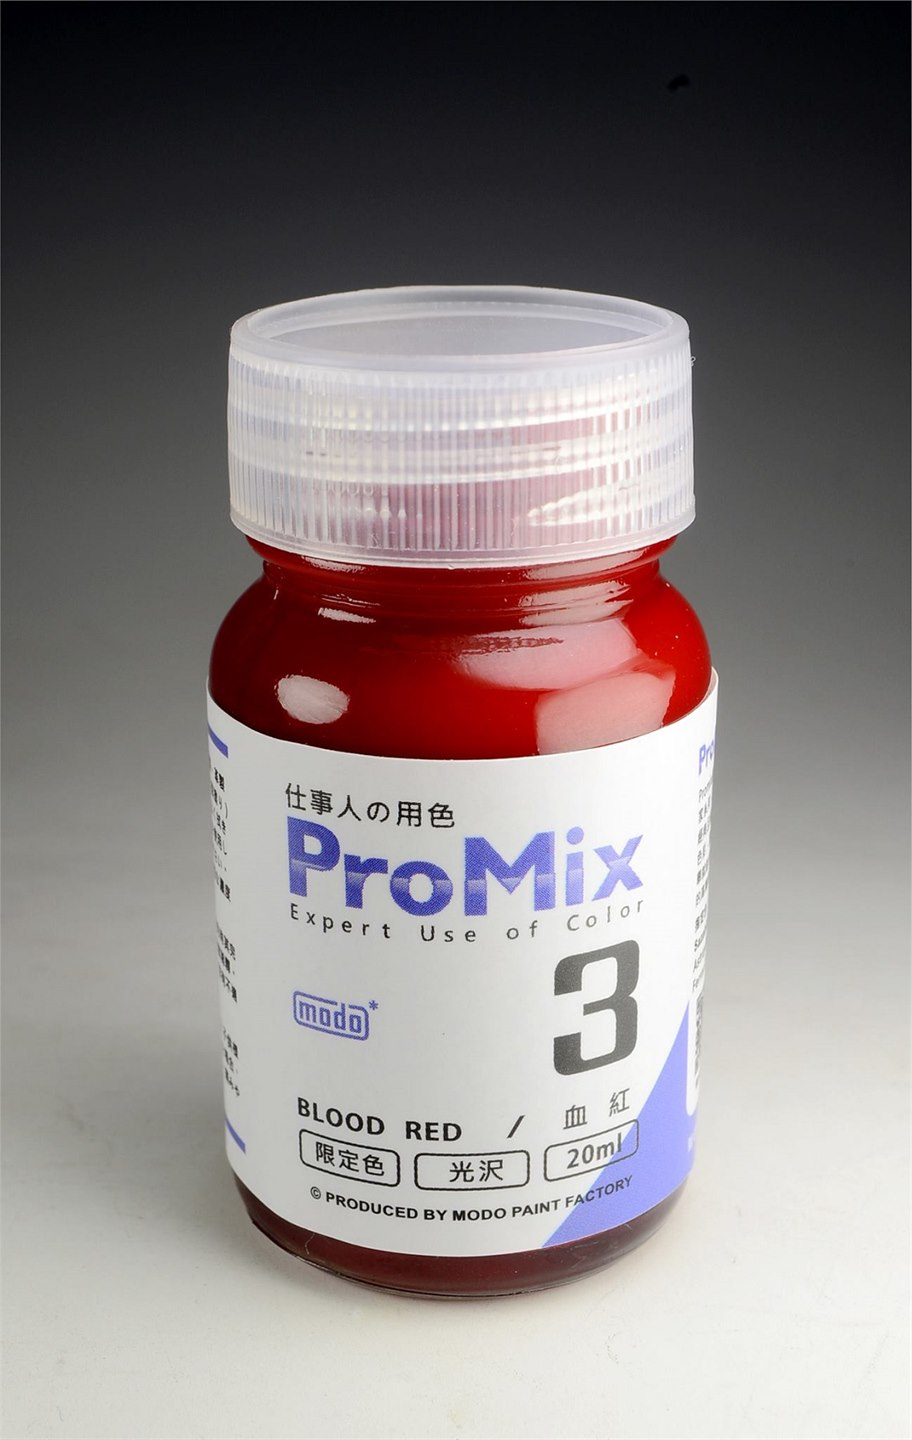 MODO PM-03 PROMIX 3 - Blood Red 20ML